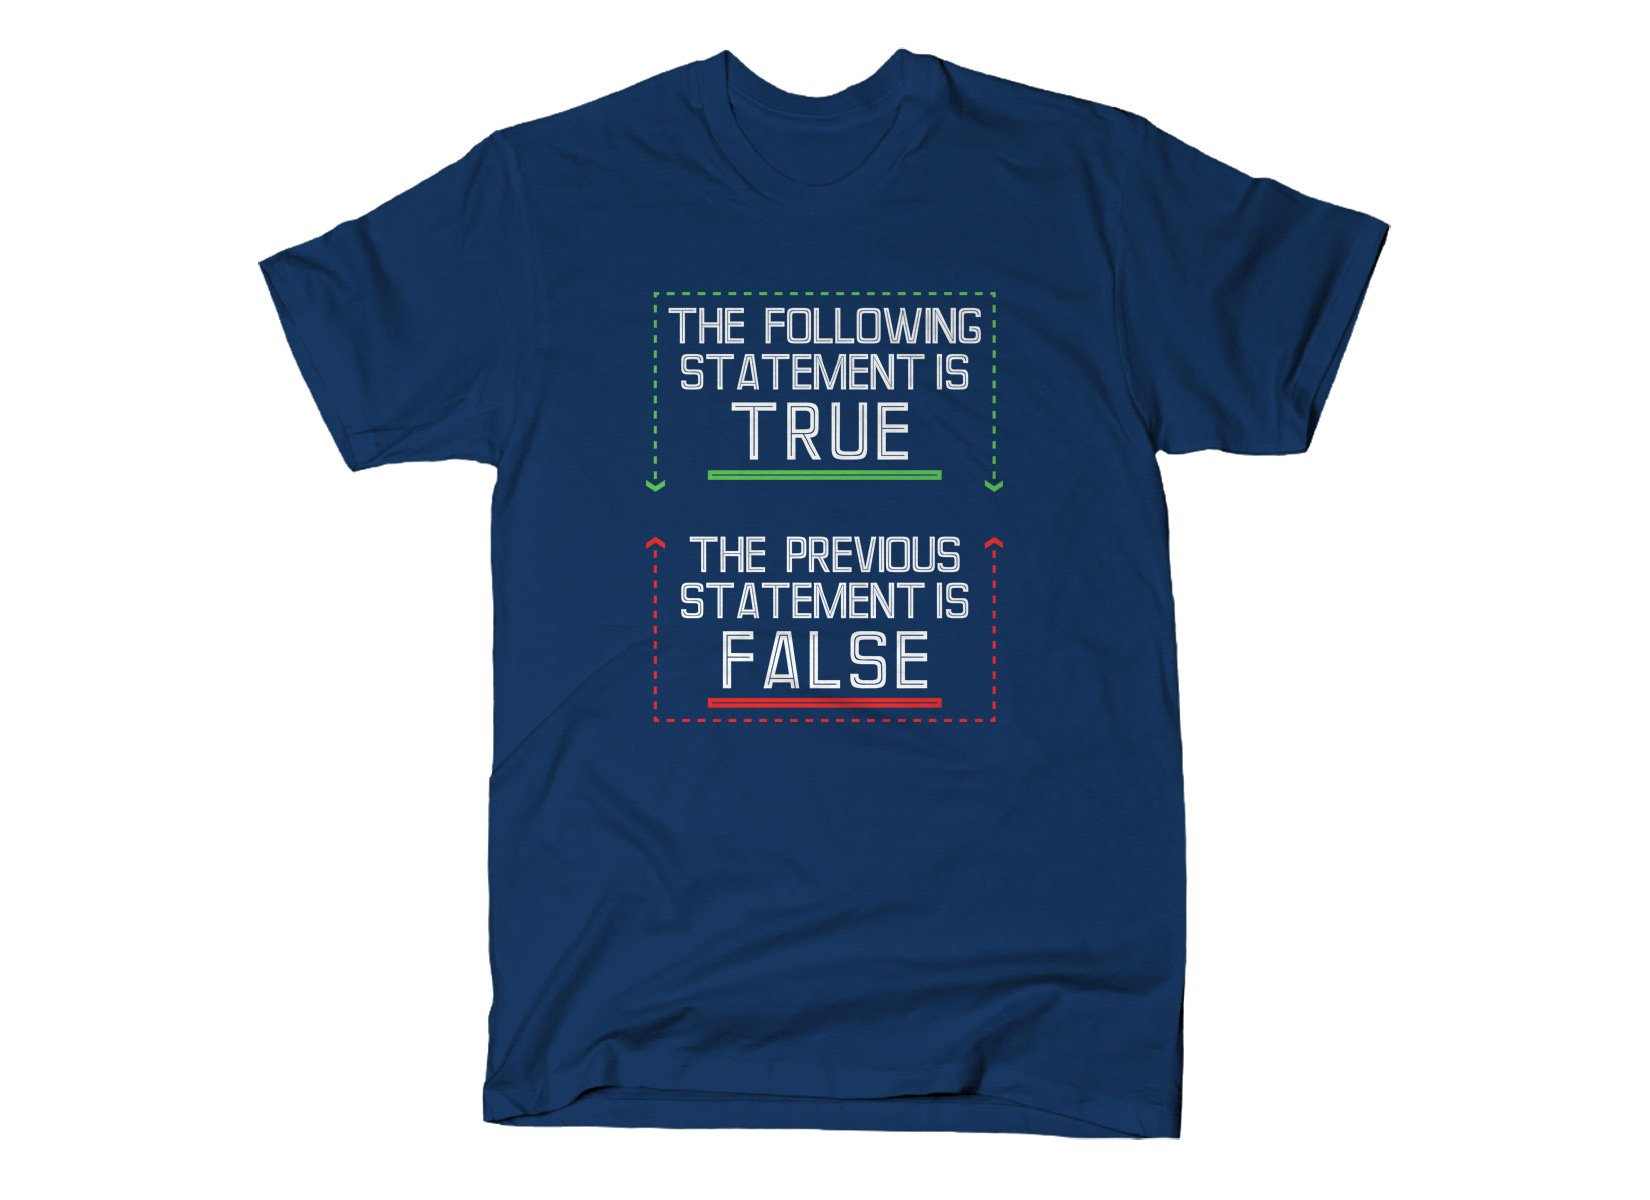 The Following Statement Is True on Mens T-Shirt